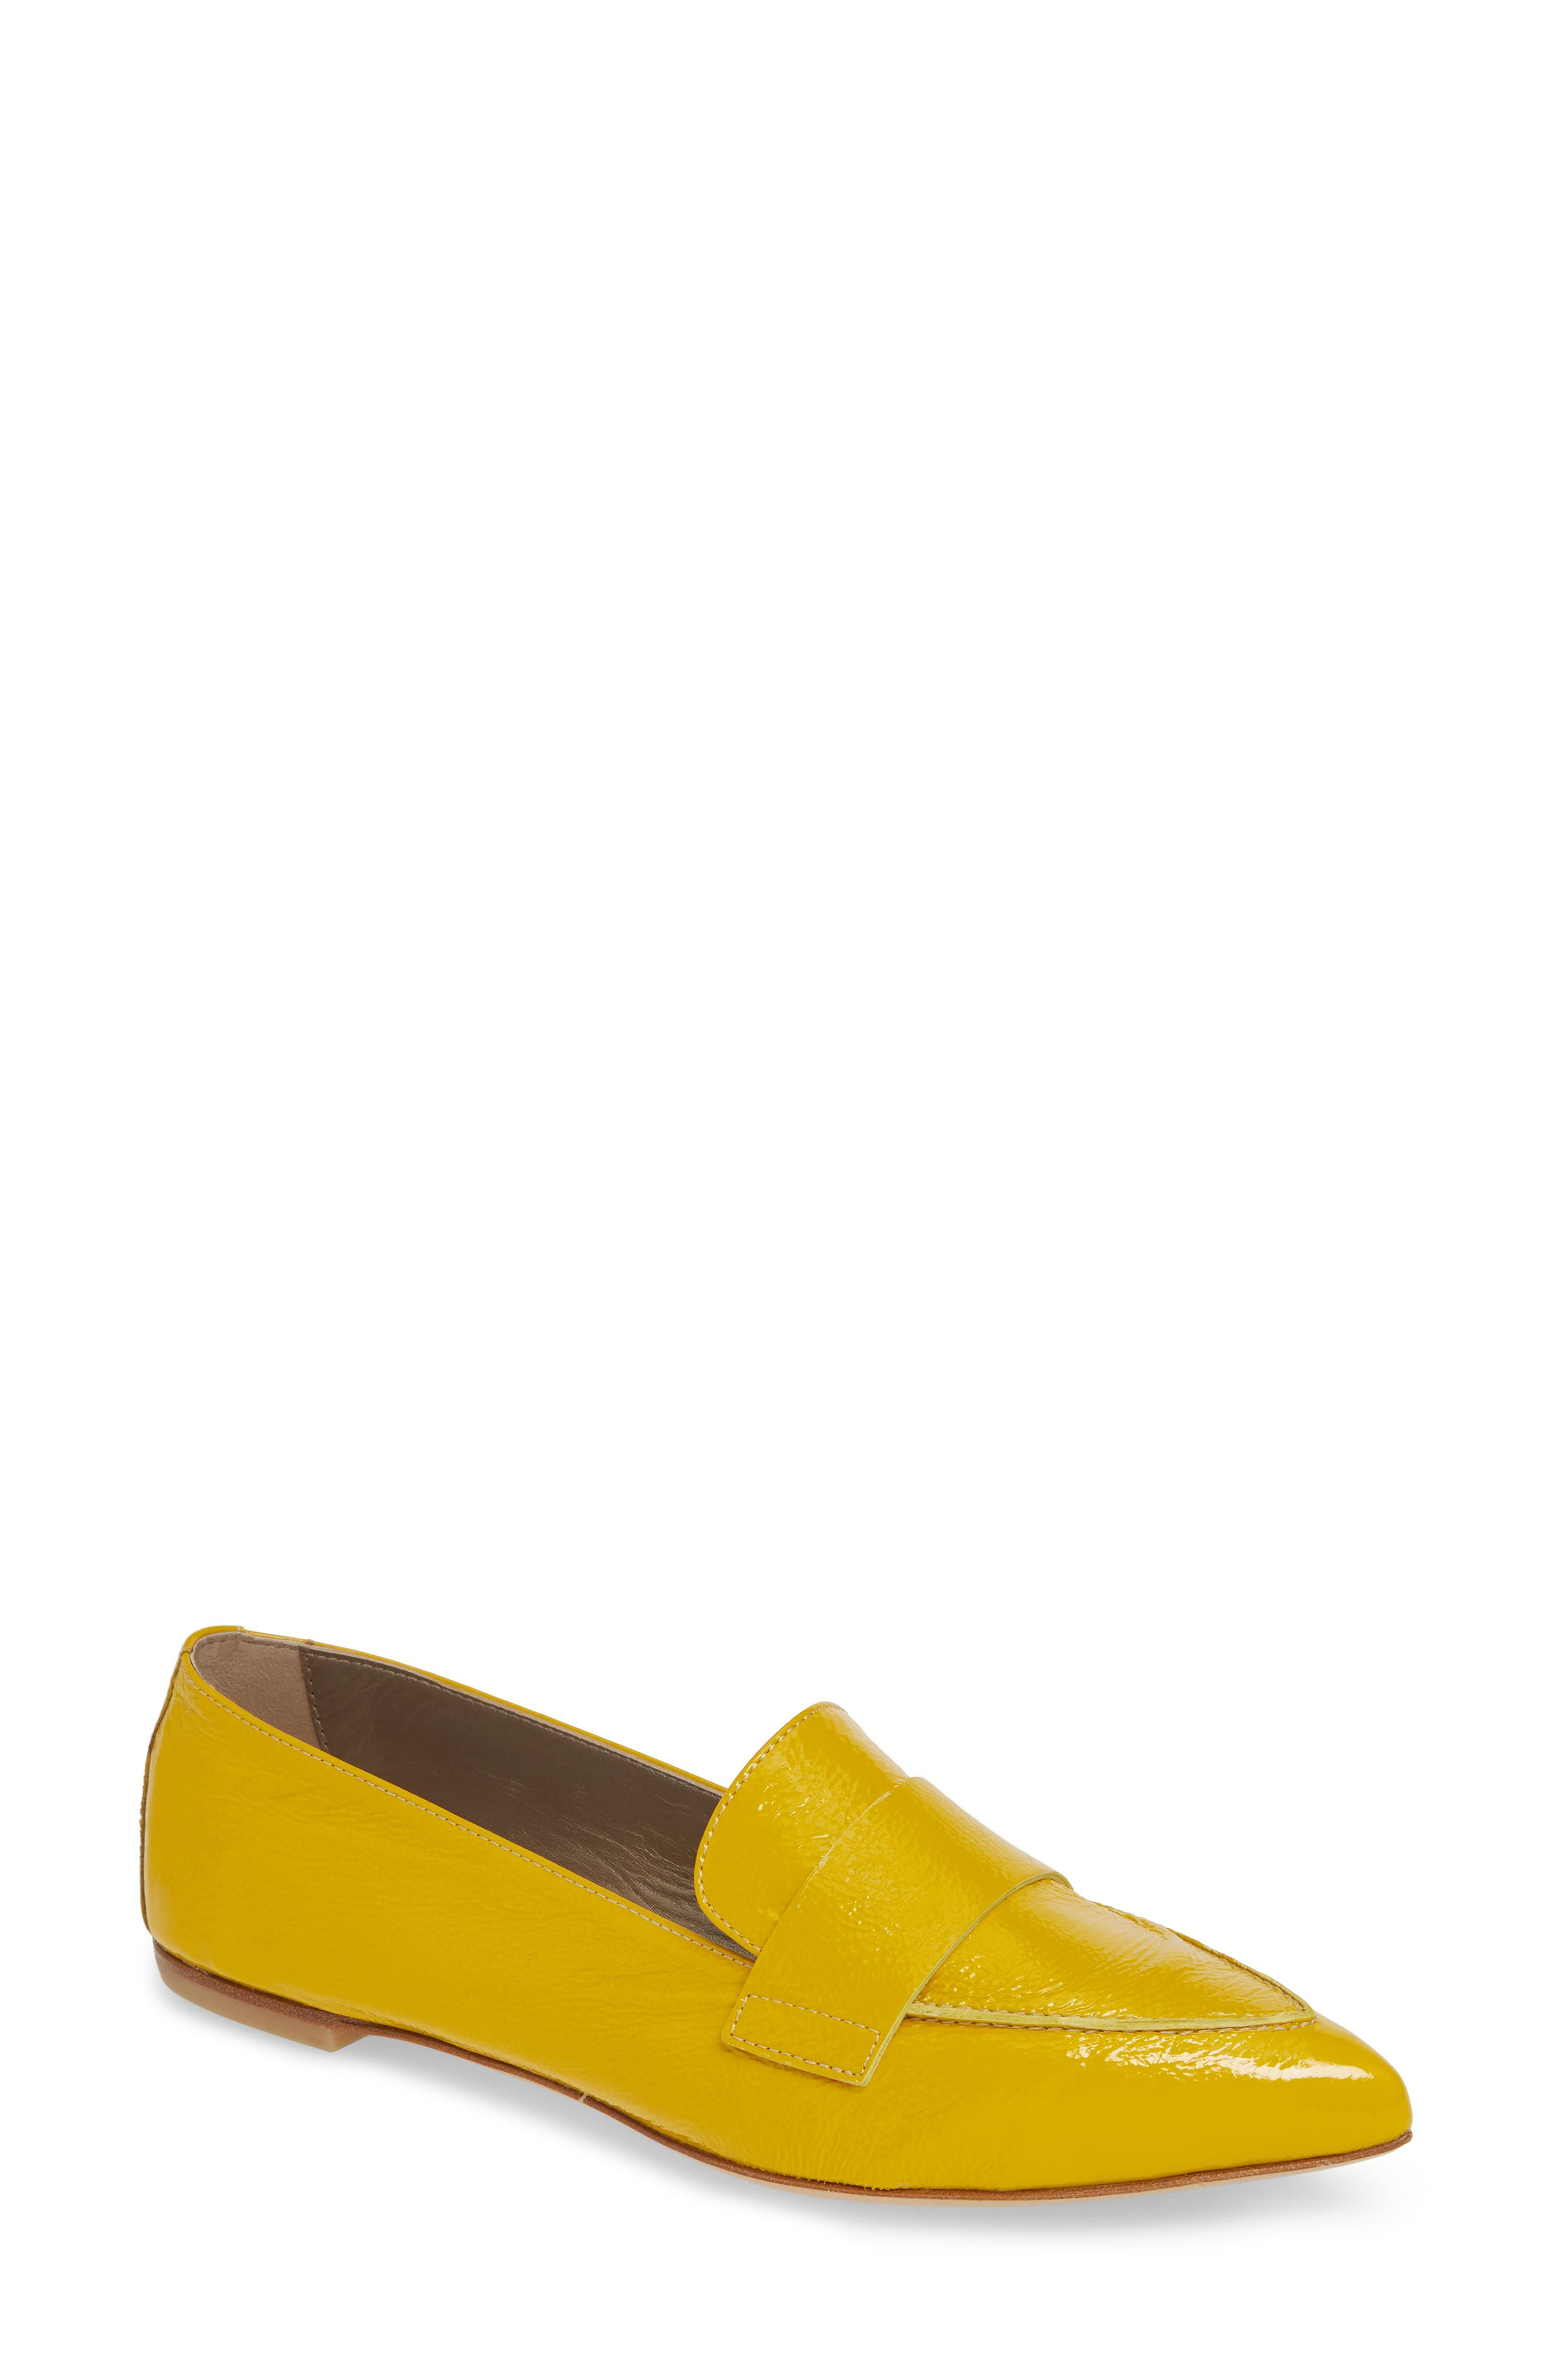 Agl Softy Pointy Toe Moccasin Loafer, Yellow